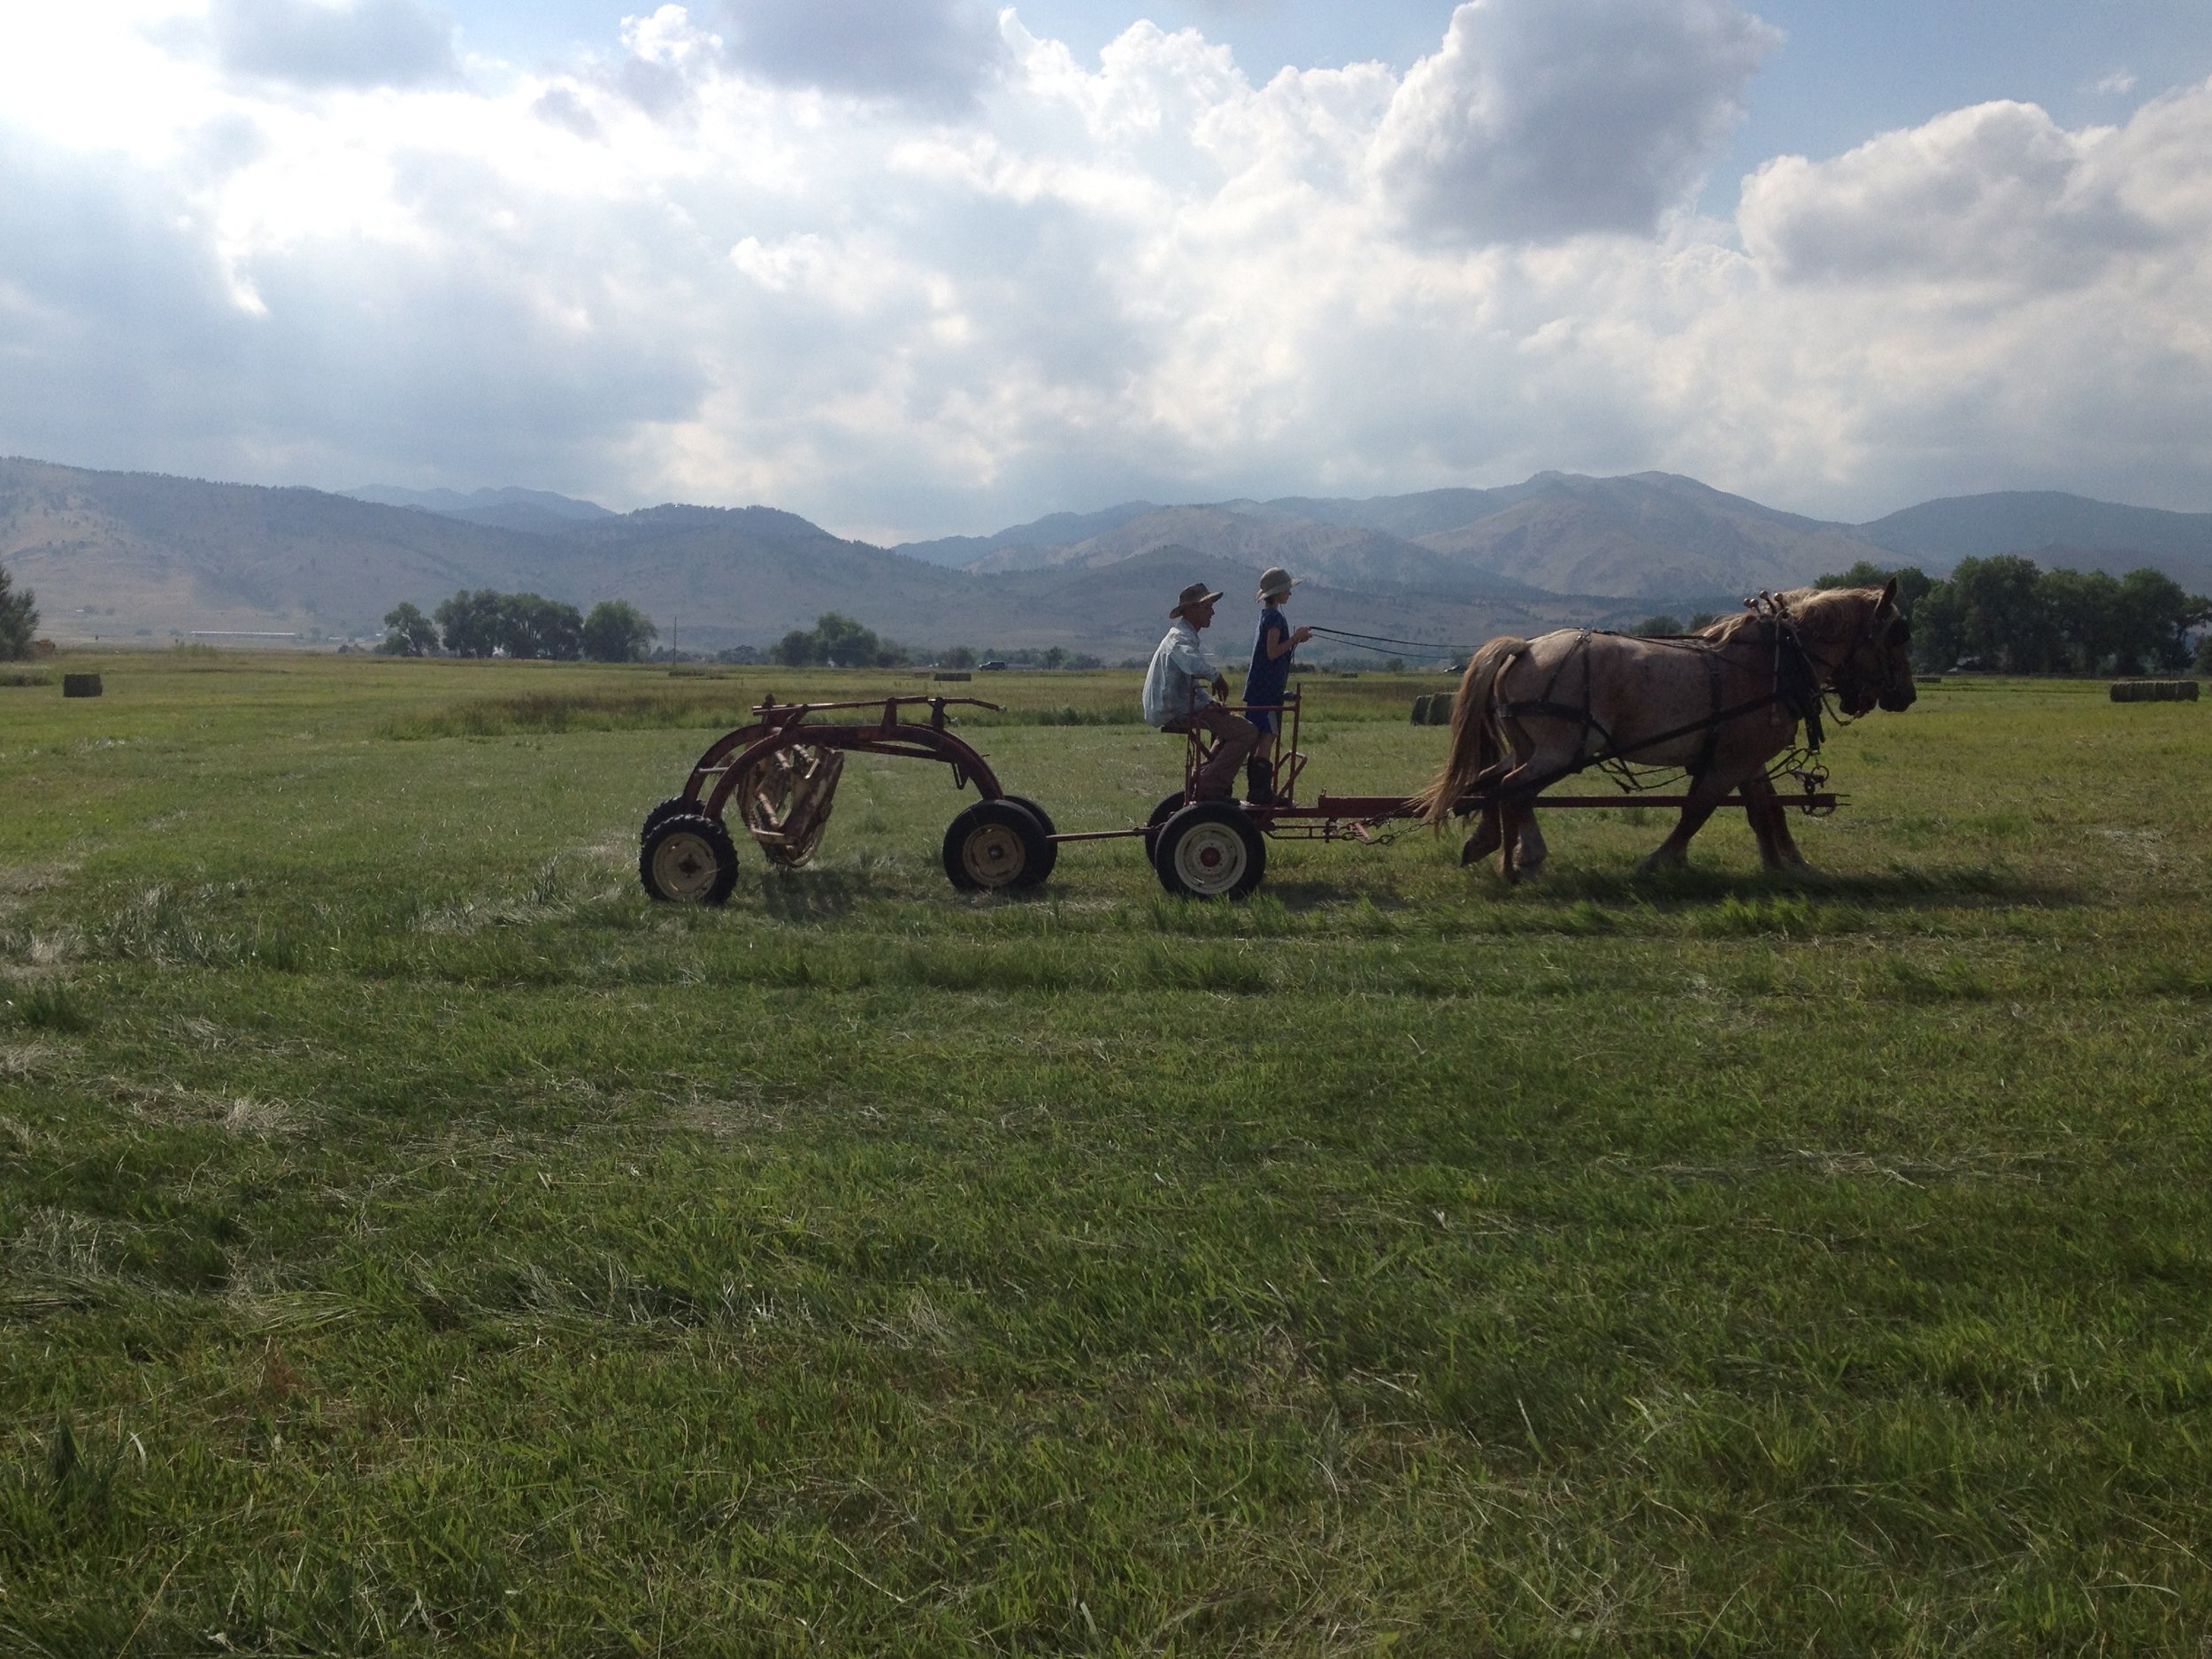 draft horse-power, making hay with horses, Boulder Colorado